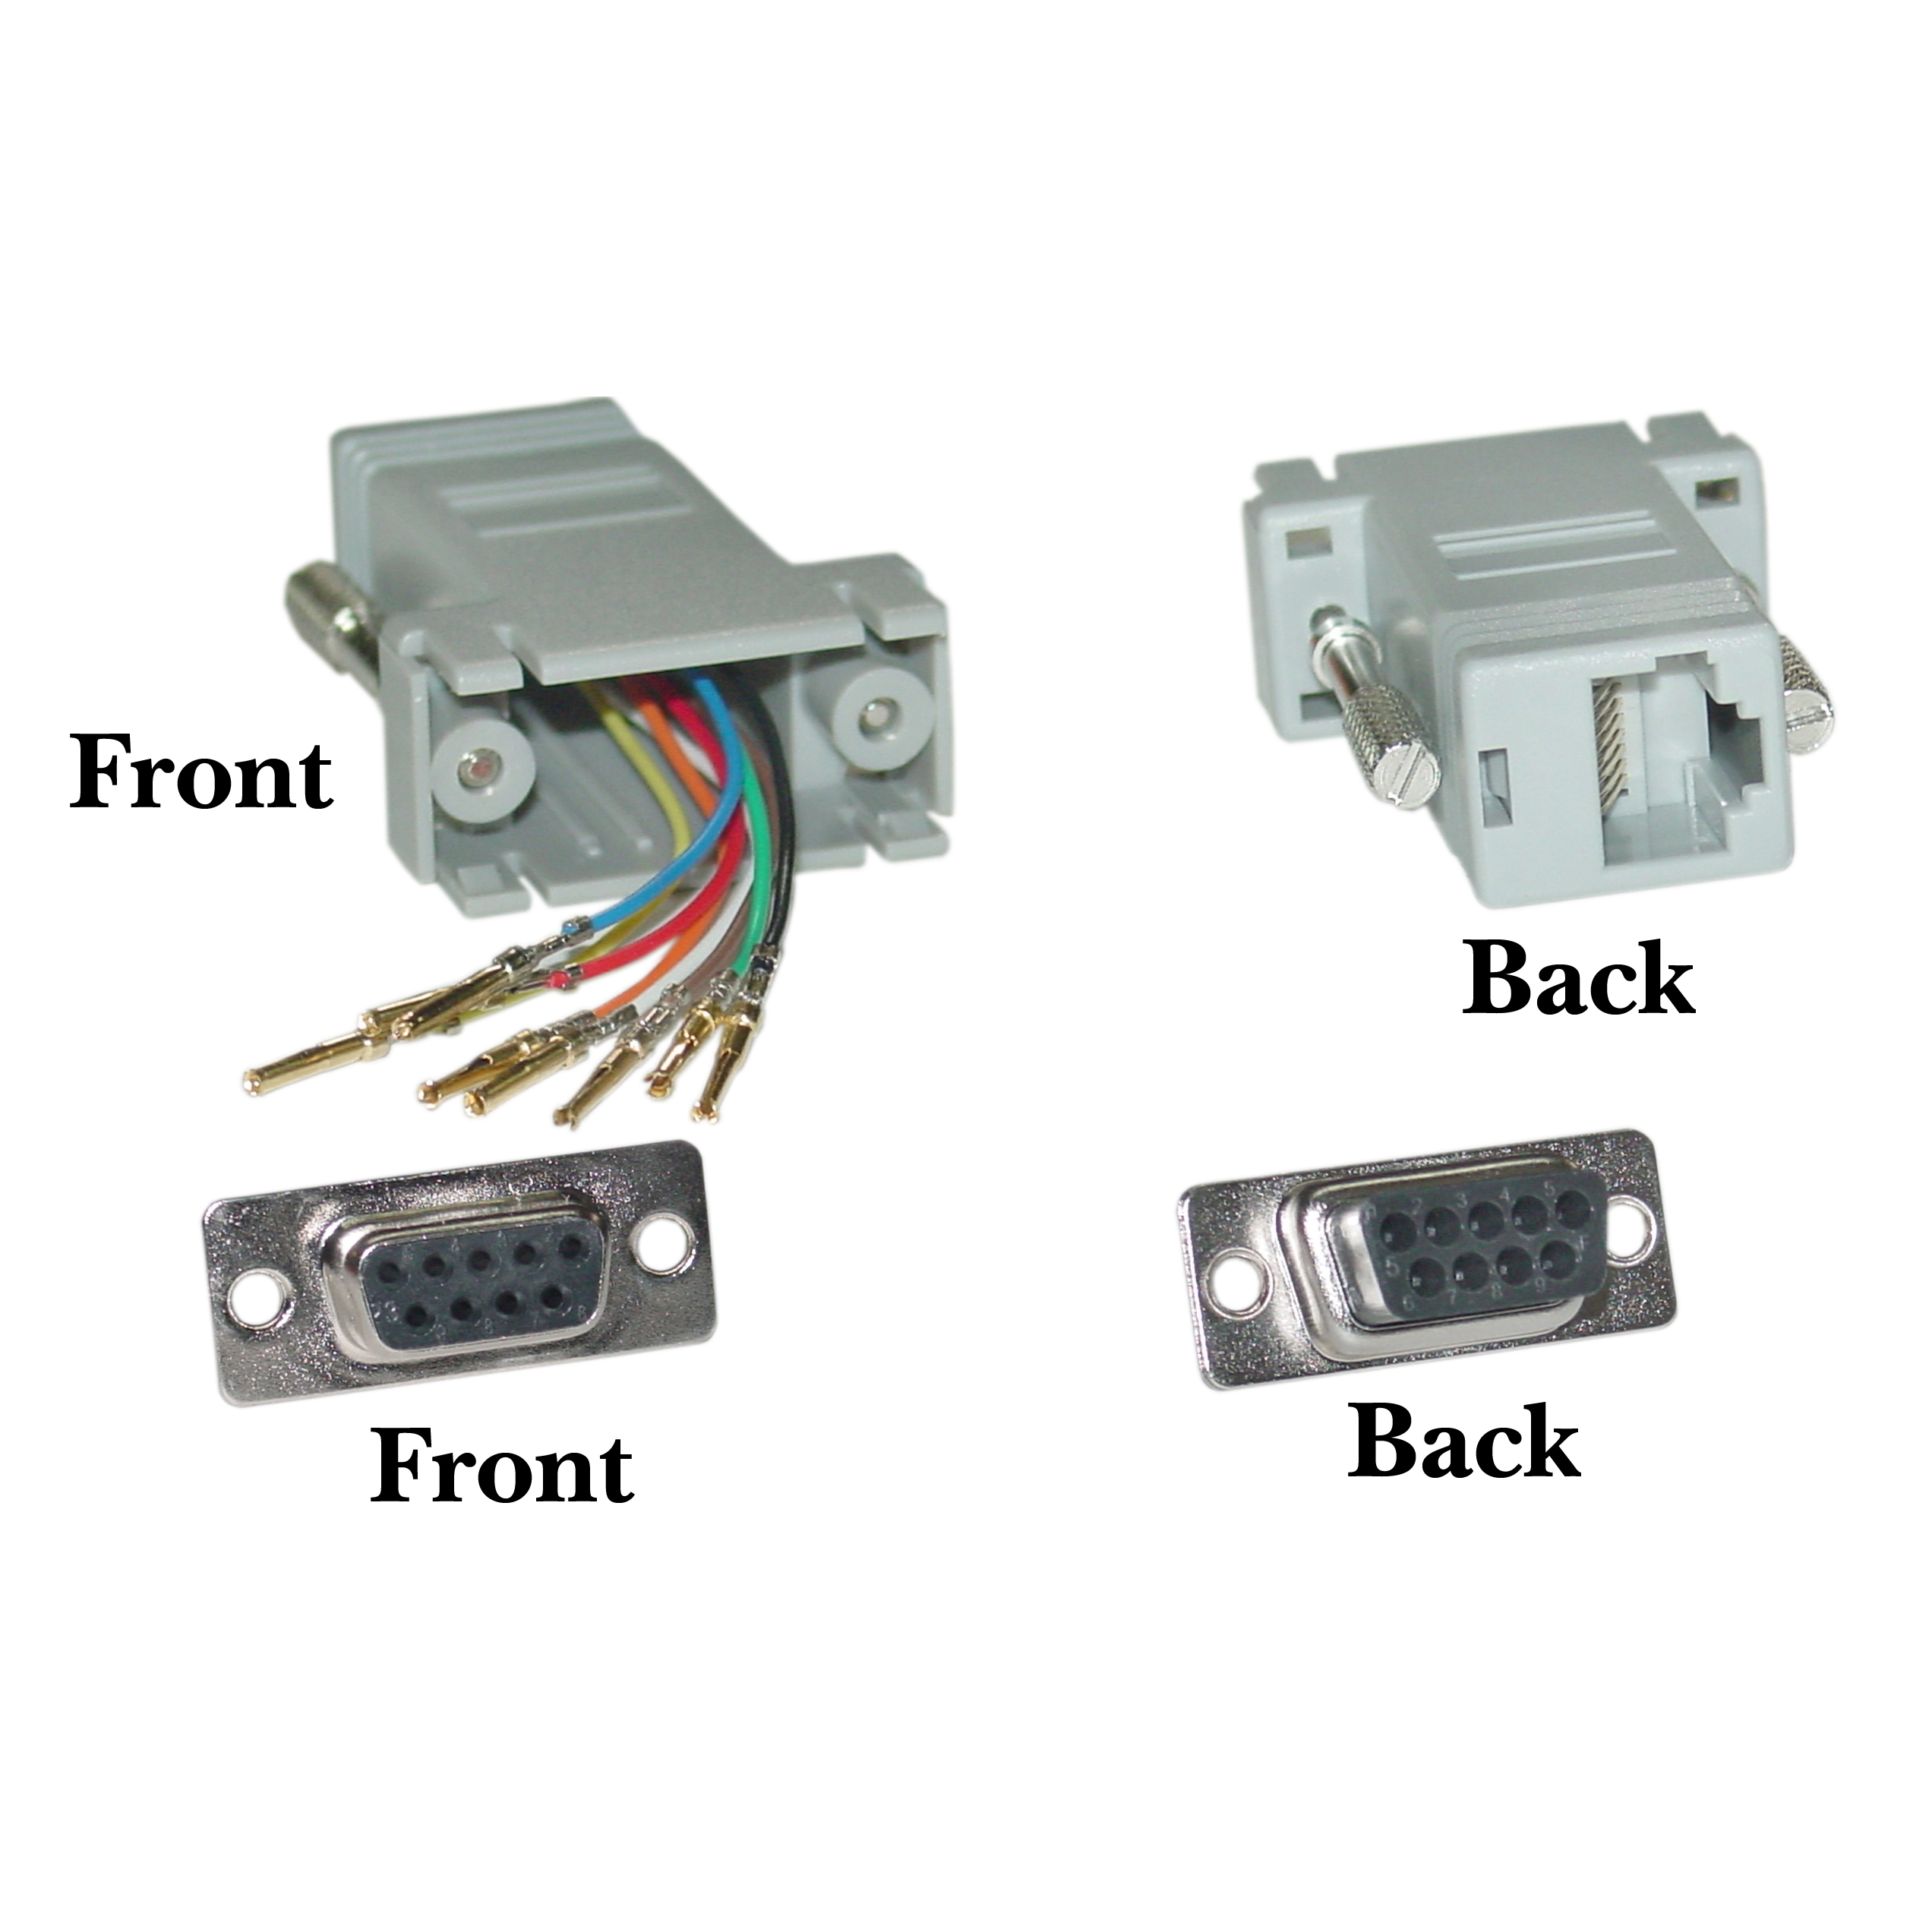 Front Panel Audio as well Spires Video Cisco Lice Local moreover Pinouts together with Vga To Rca Video Cable Pinout moreover Hdmi Displayport Dvi Vga Video  ponente Qual O Melhor. on dvi to vga pinout